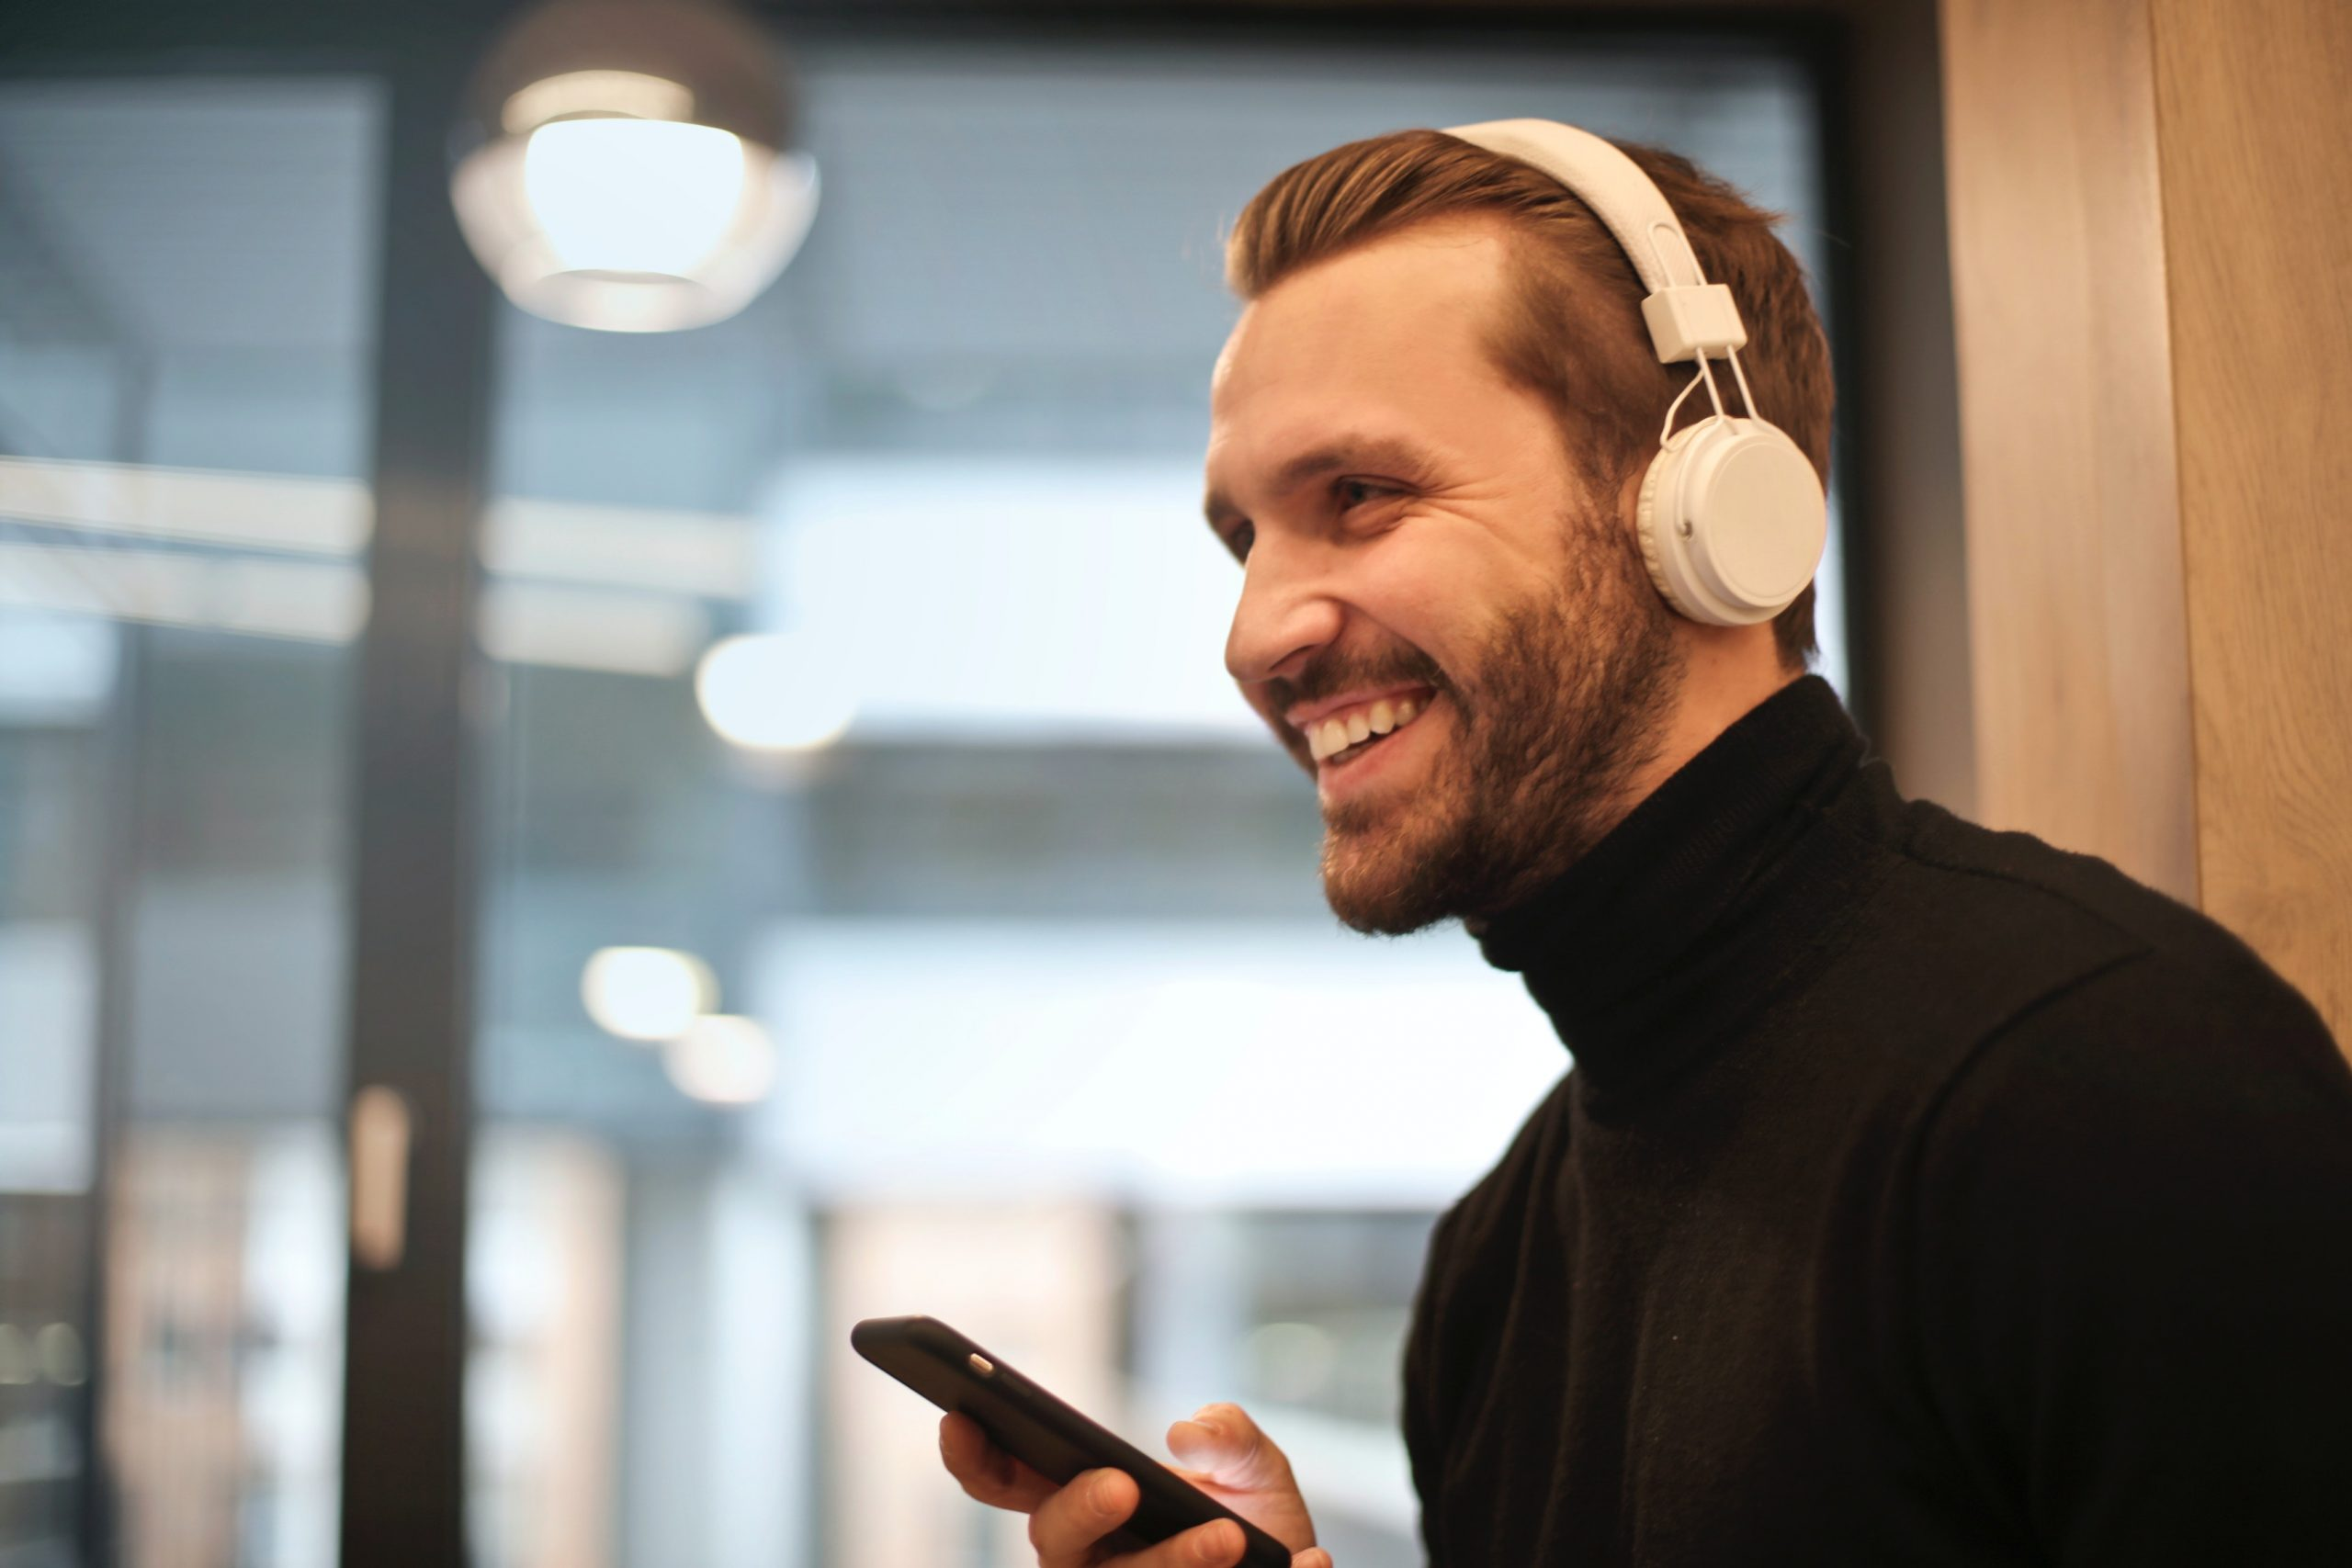 man with beard and black top, smiling, with white headphones on and holding a smartphone.